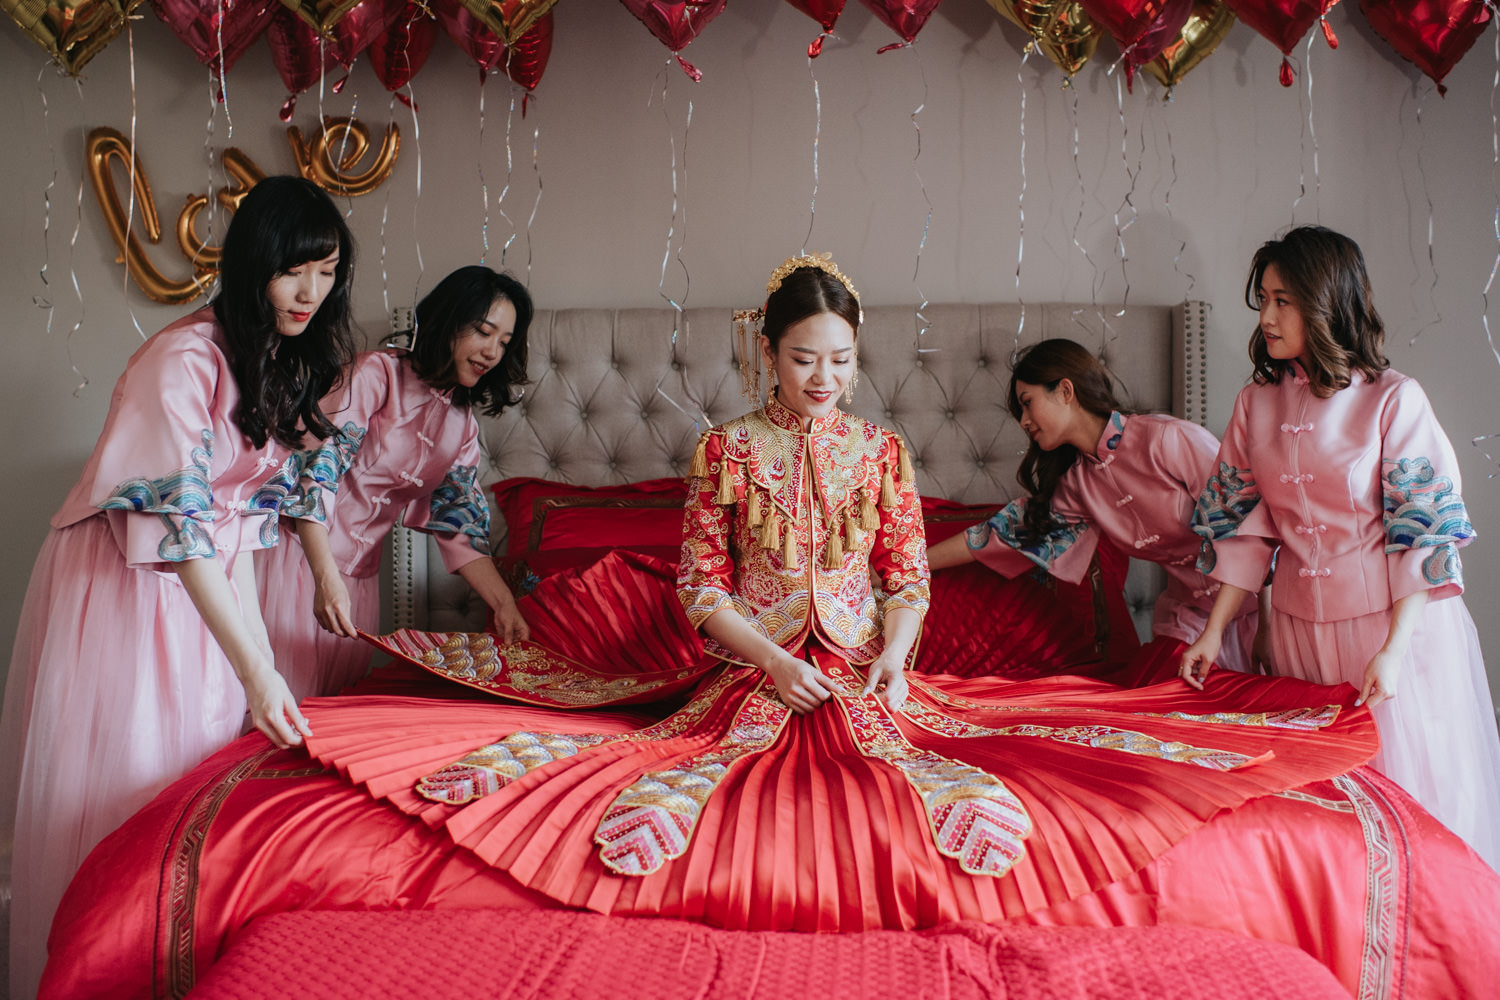 Photo of a Bride and Bridesmaids at a Chinese wedding